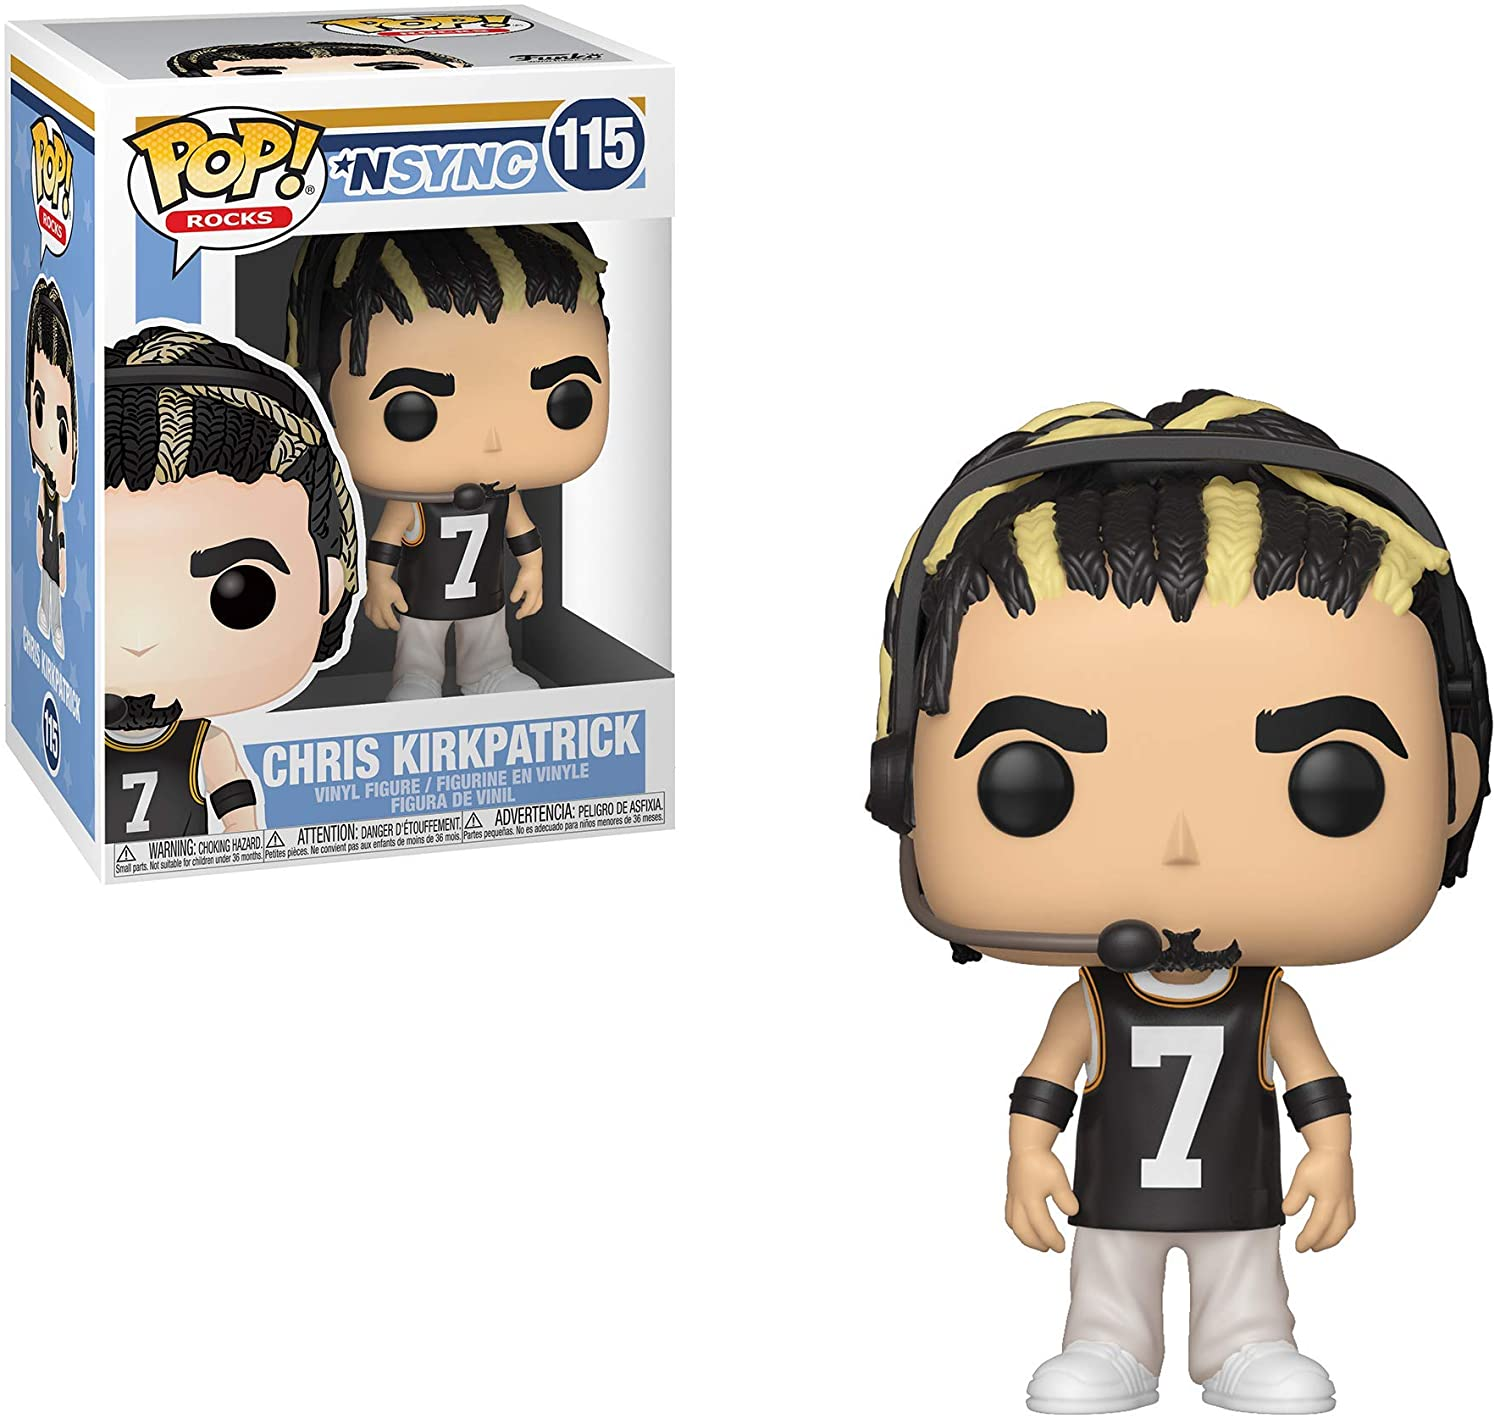 POP! Rocks: N'SYNC - Chris Kirkpatrick Vinyl Figure #115